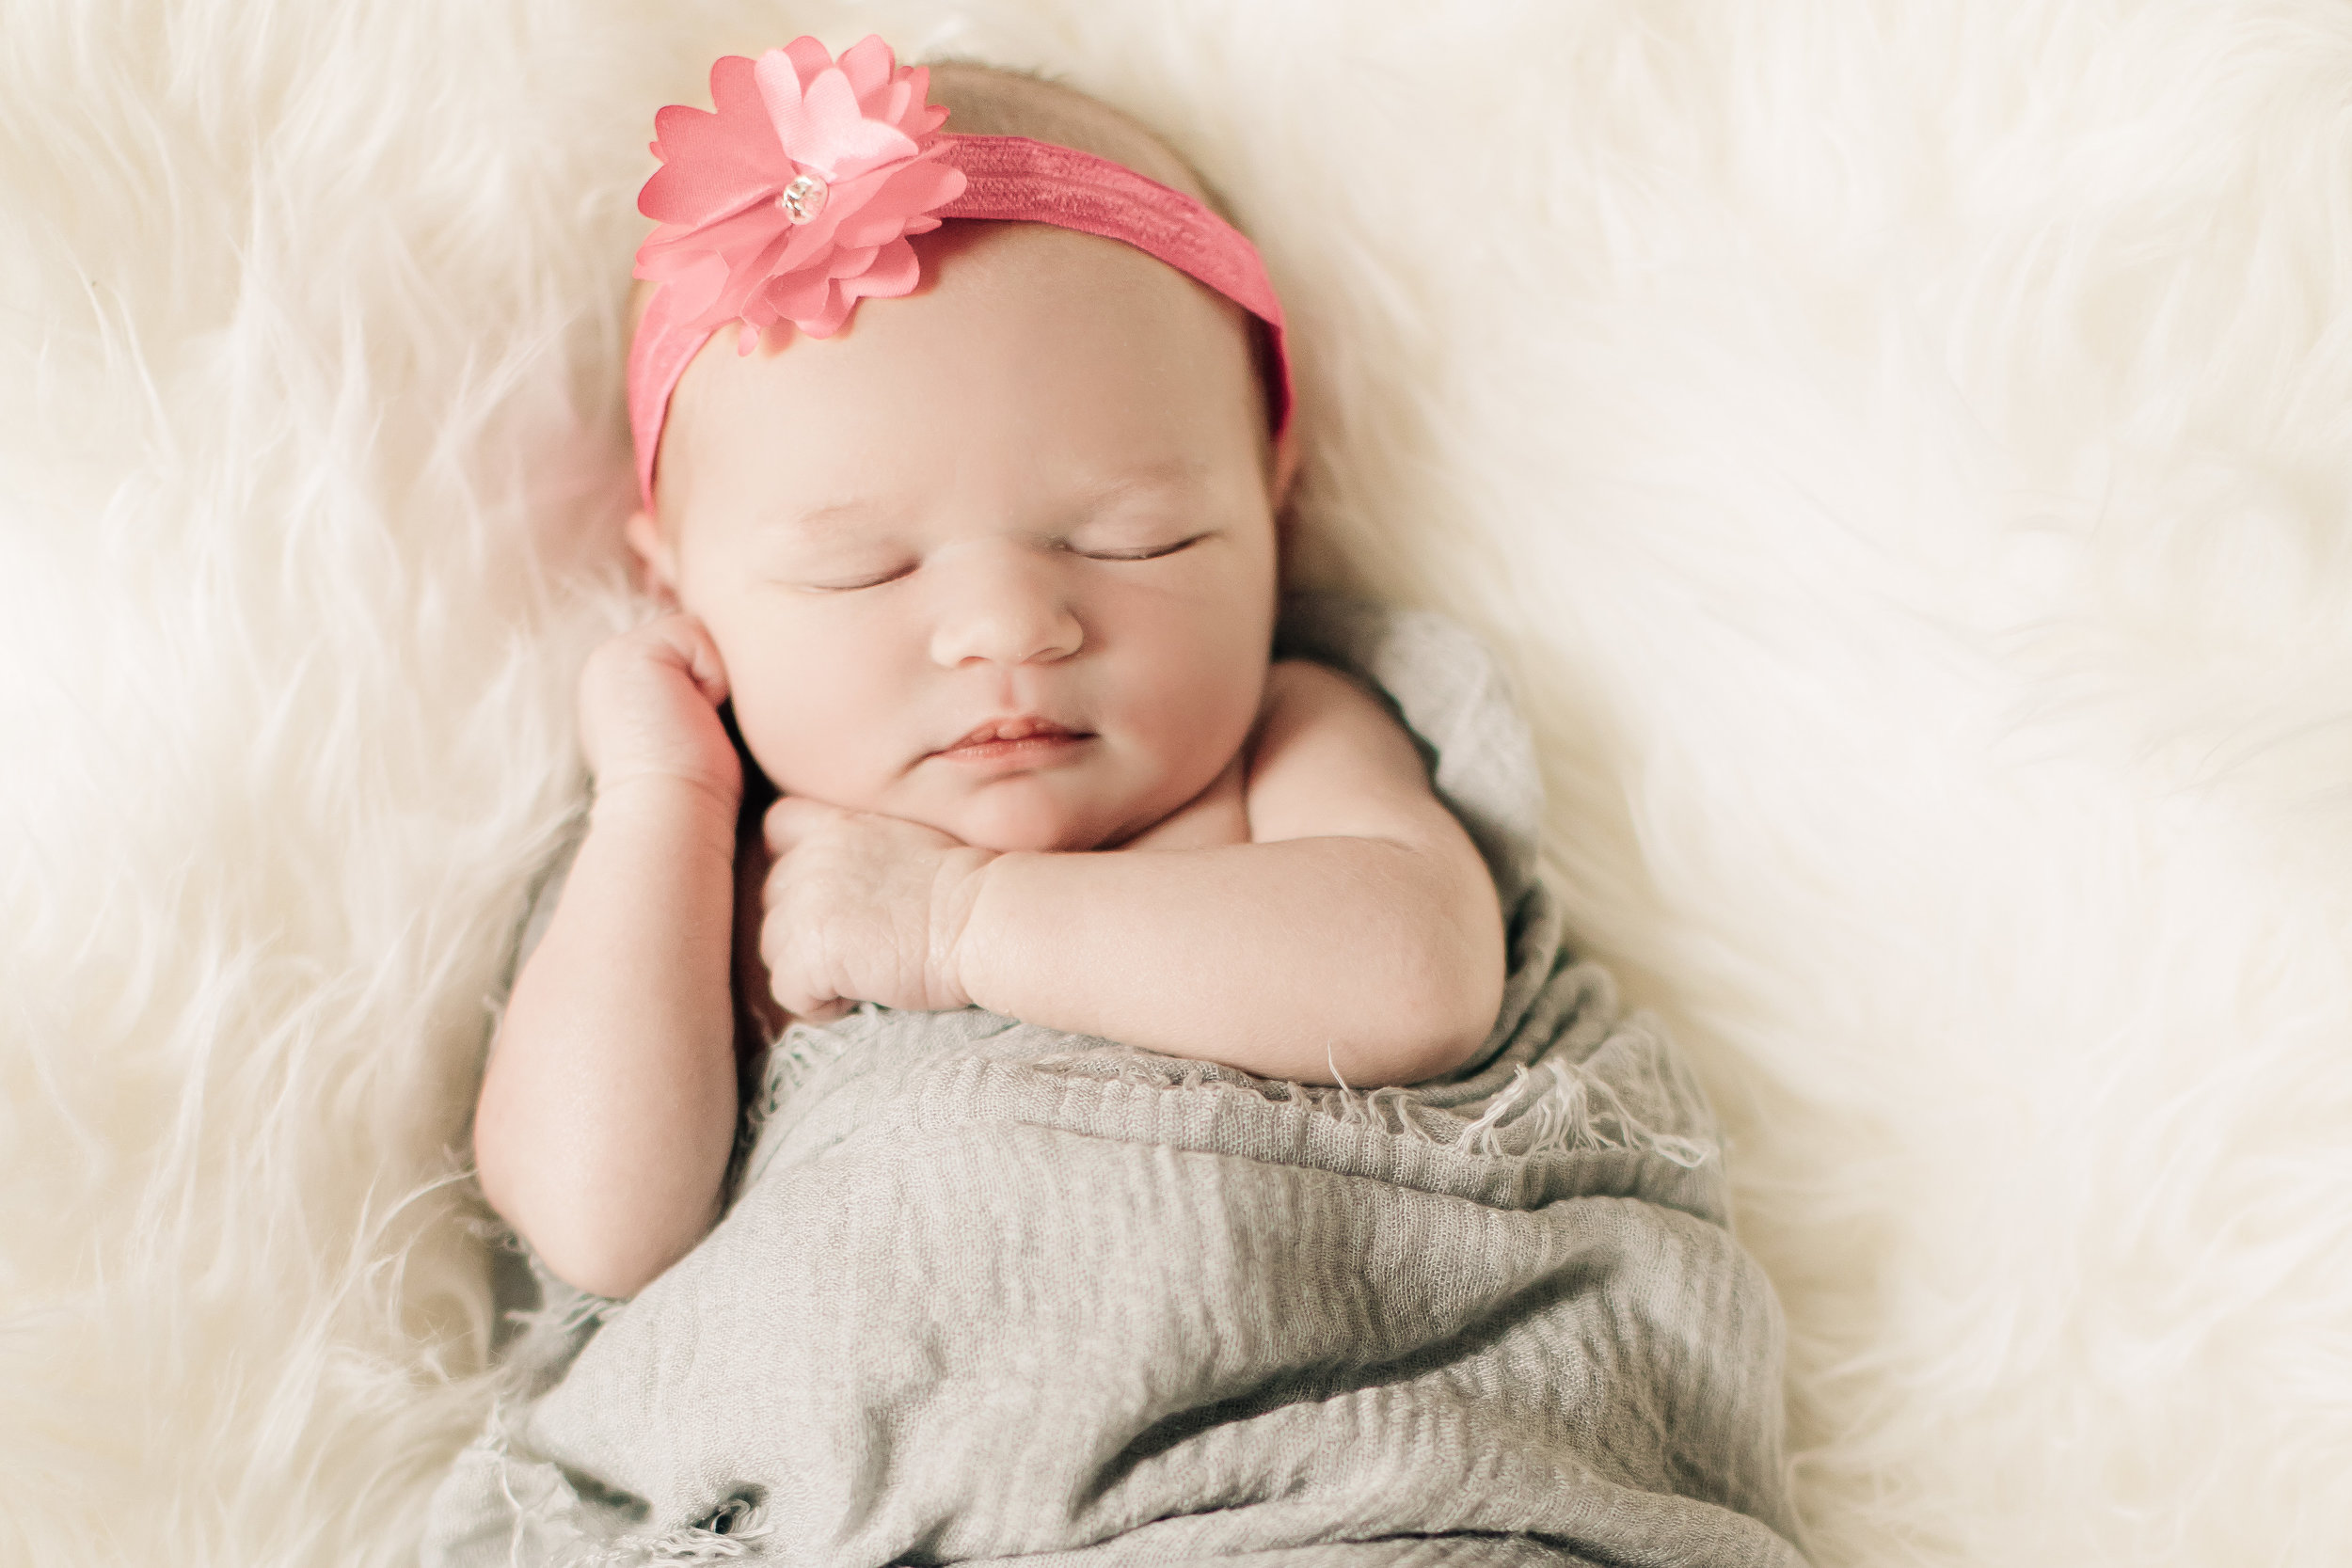 Newborn-Session-Goodhue-MN-093-5DM45489.jpg